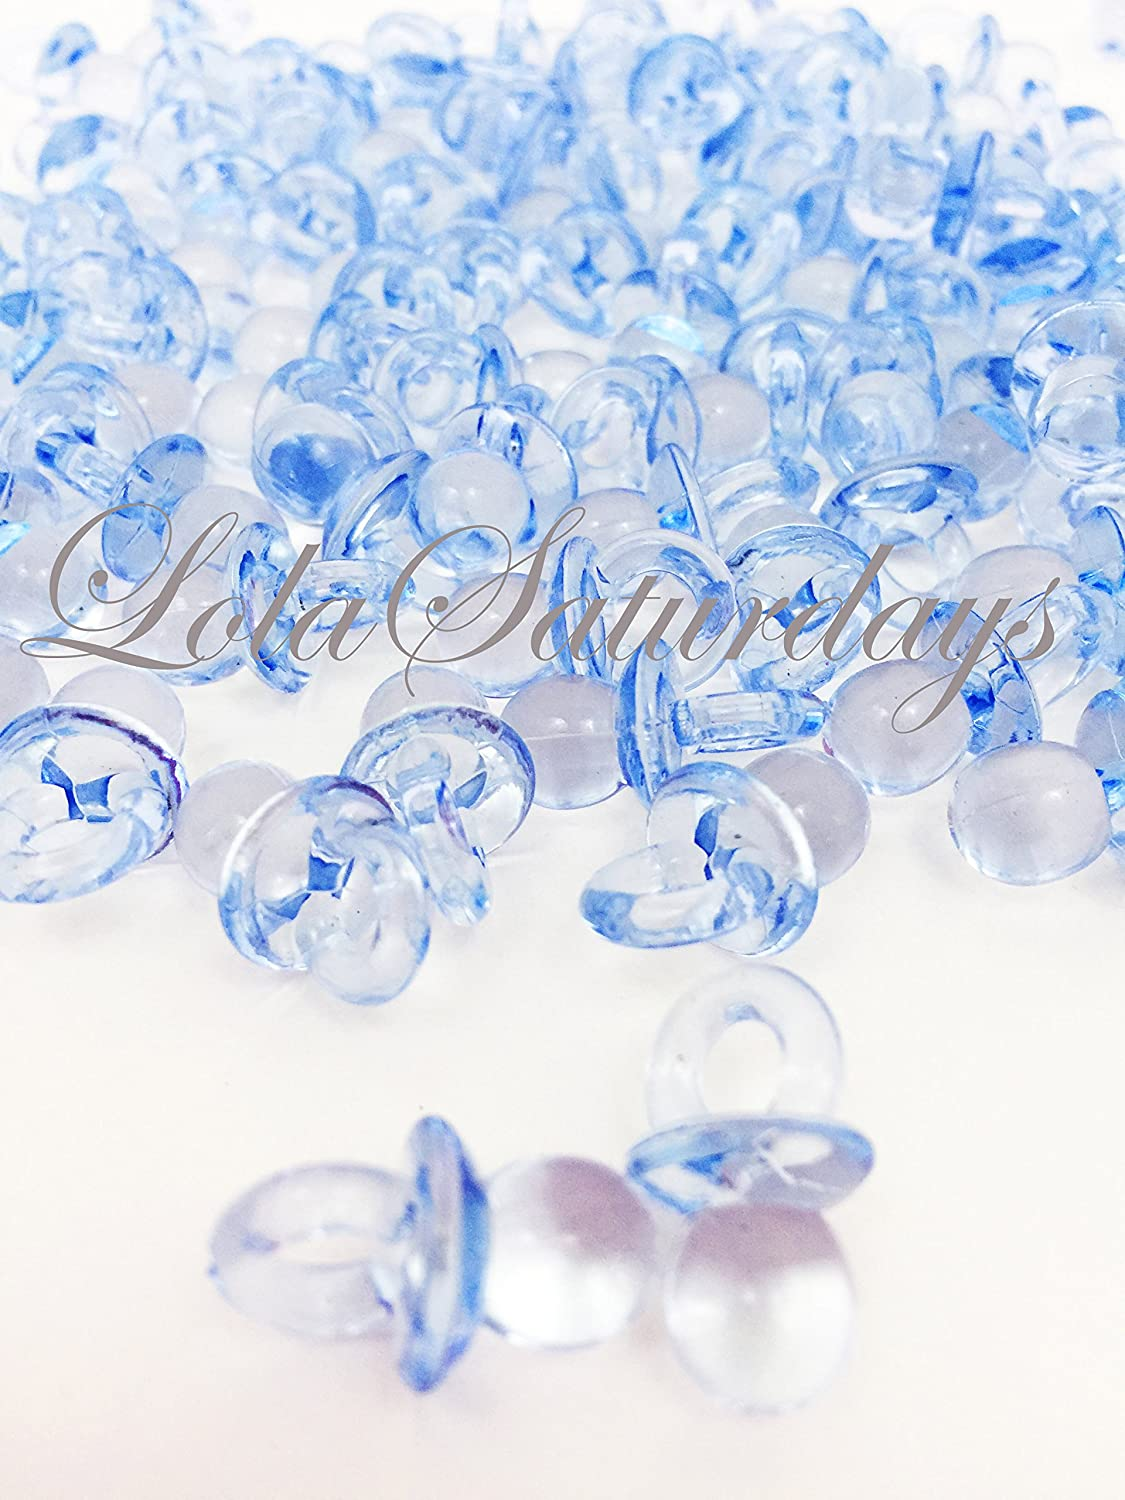 LolaSaturdays Baby Pacifiers Acrylic Party Favors - Blue 100 pcs